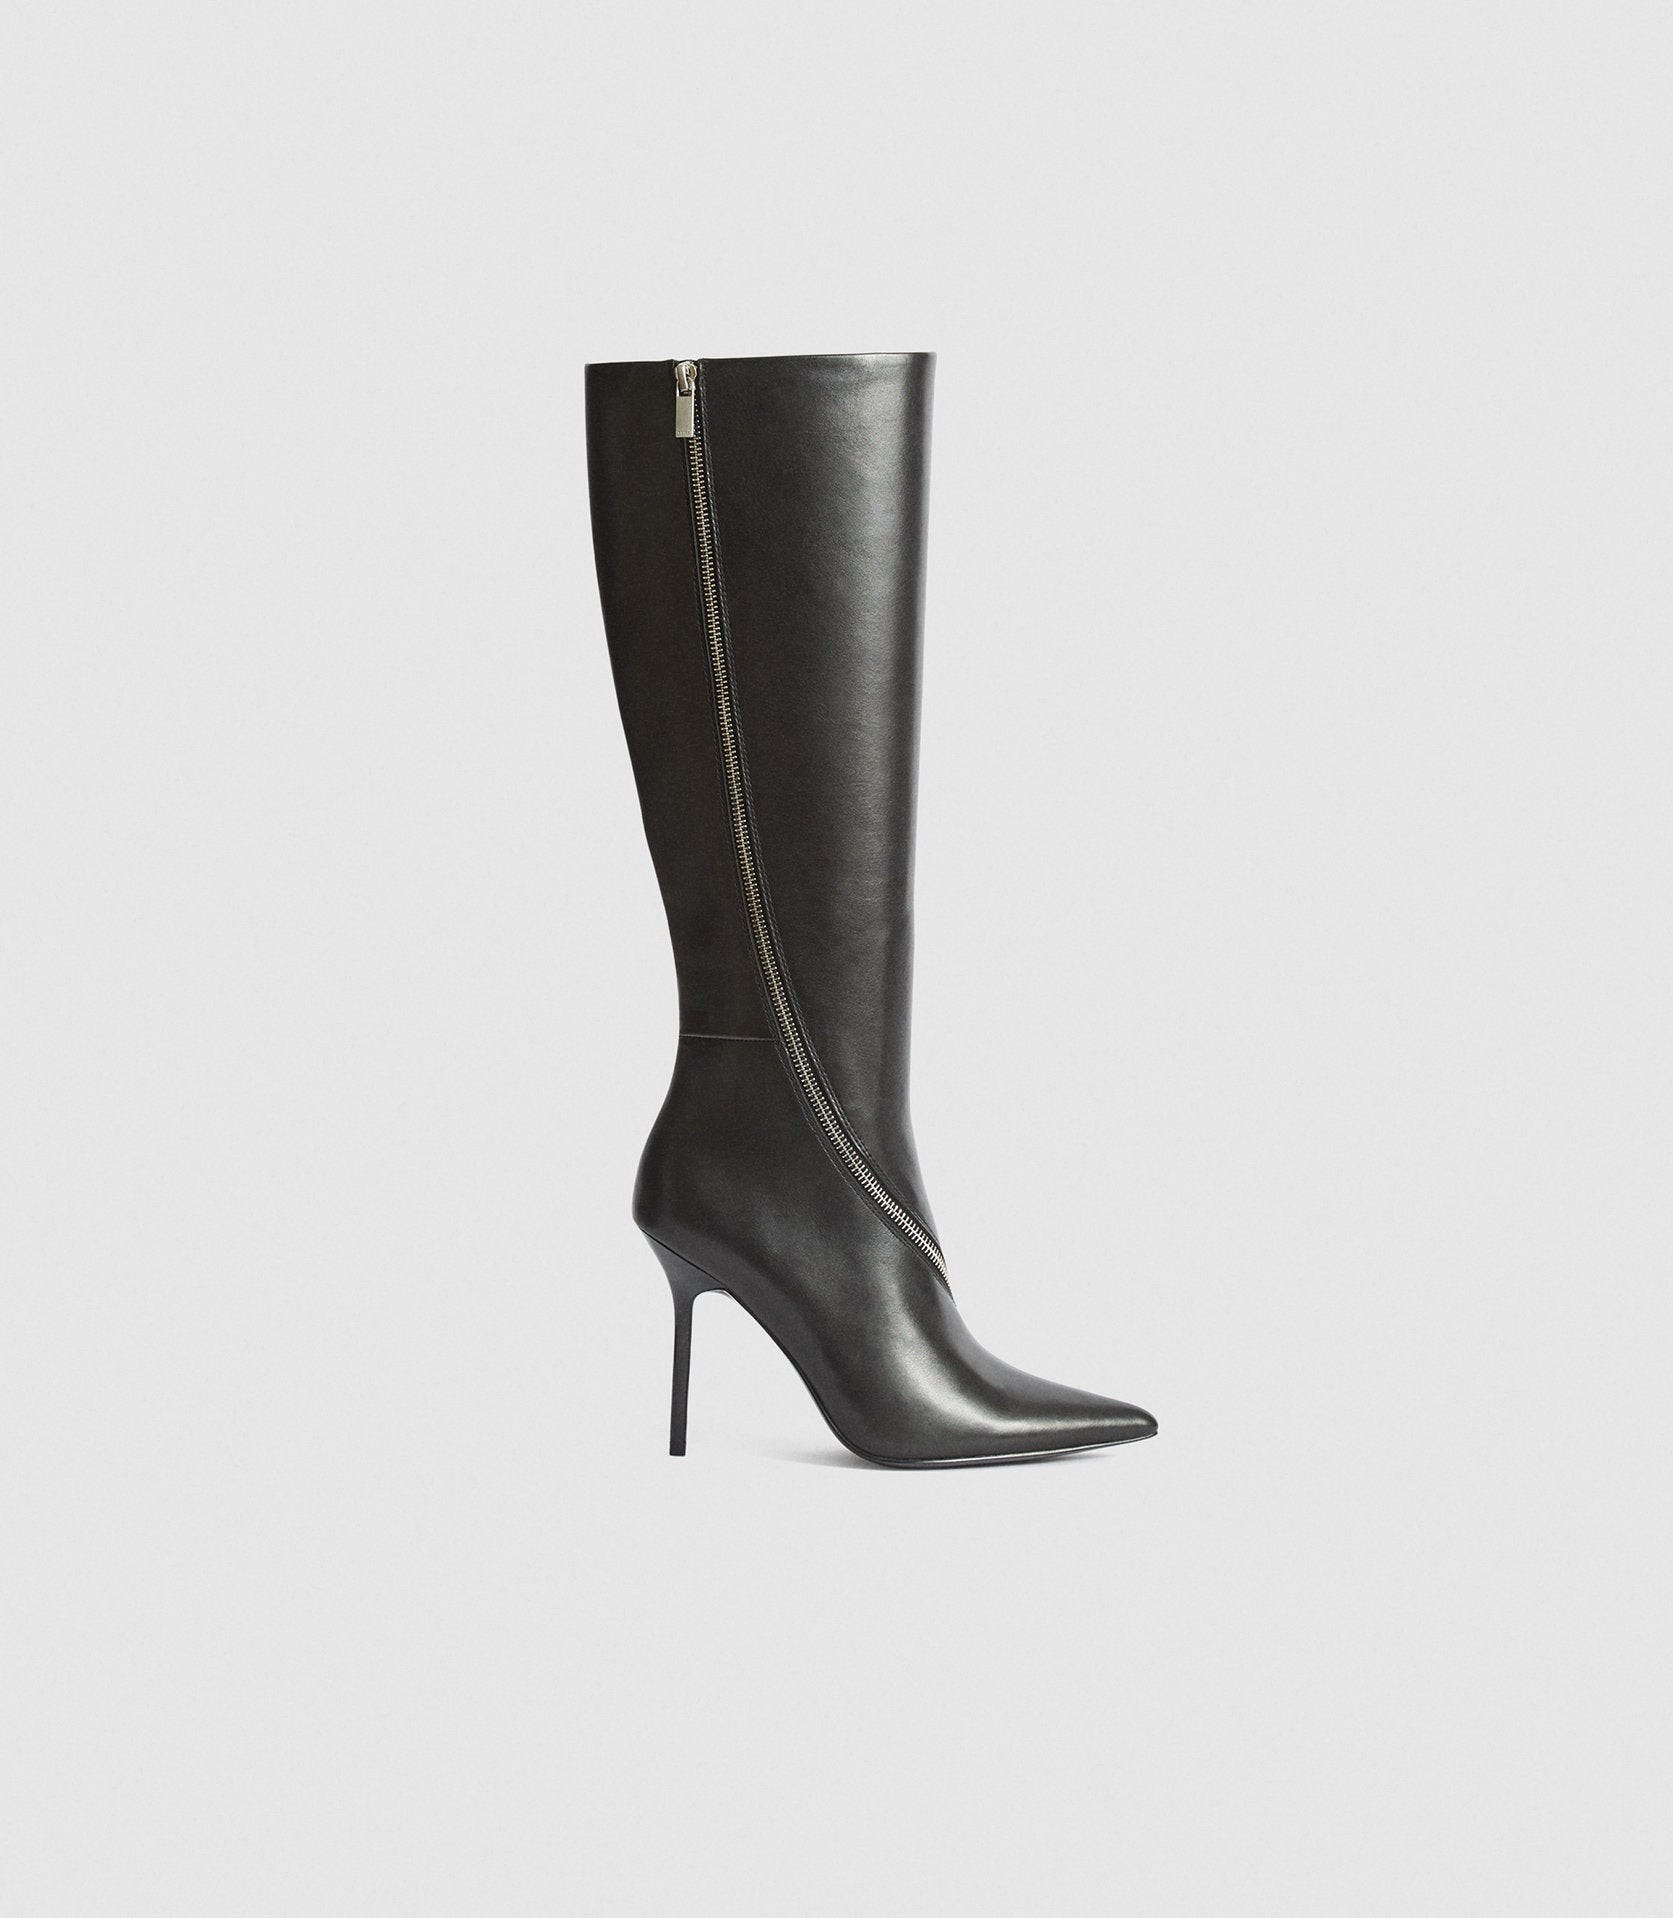 Reiss Hoxton Knee High - Leather Black, Womens, Size 3 Knee High Boots